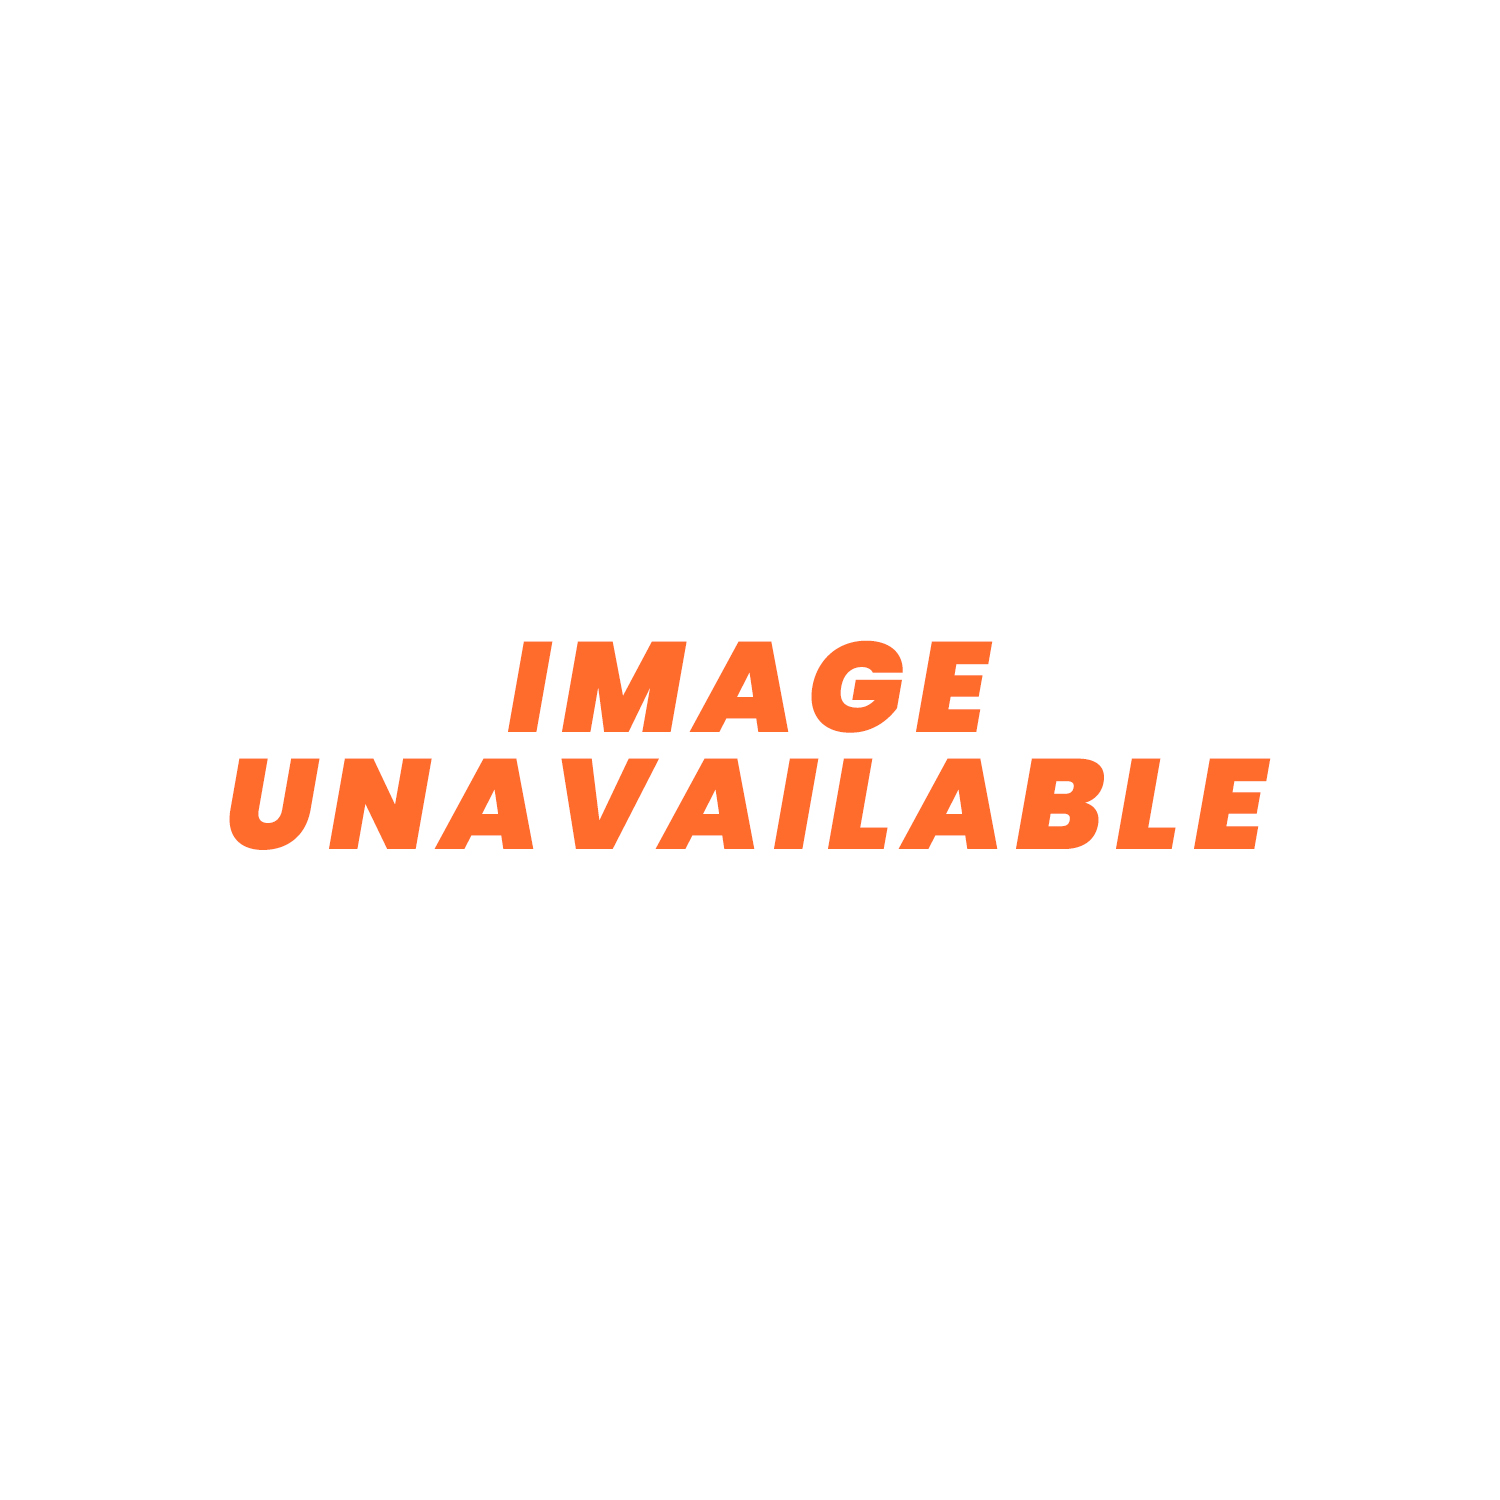 Sanden SD7H15 4664 155cc Compressor Poly-V 2G 'A' 132mm 12v